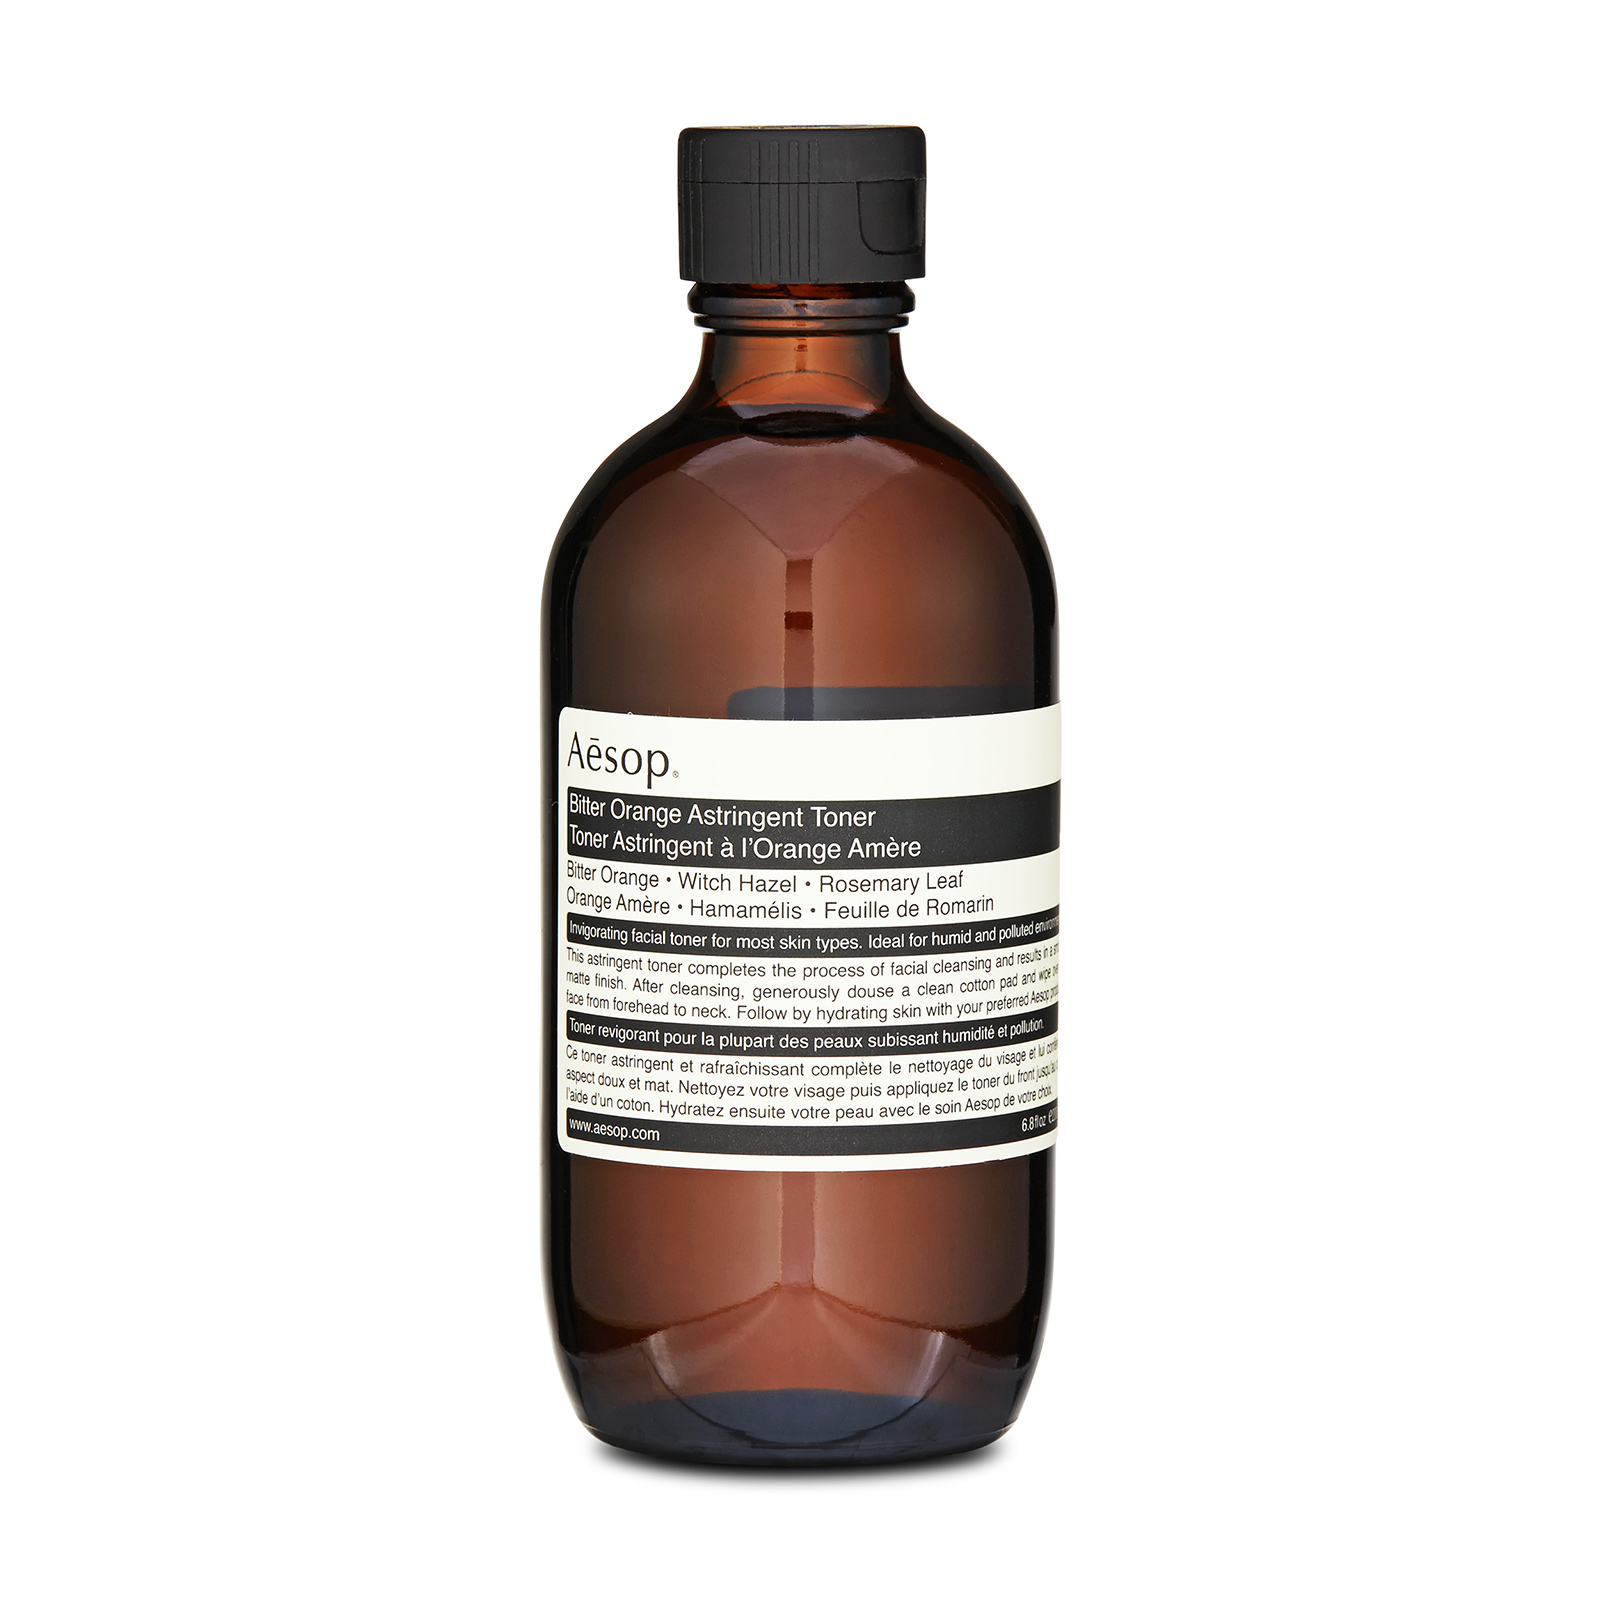 Aesop Bitter Orange Astringent Toner has the following features:This gentle yet astringent citrus-based formulation thoroughly cleanses the skin of sweat and grime, to leave it balanced, refreshed and prepared for hydration. Ideal to deal with any environmental changes or hormonal changes to your skin, however, it can be used for any skin type. The refreshing qualities of this toner are perfect for giving your skin a lift and will help to balance the skin as well as bring out the excess sebum and remove impurities from its surface.